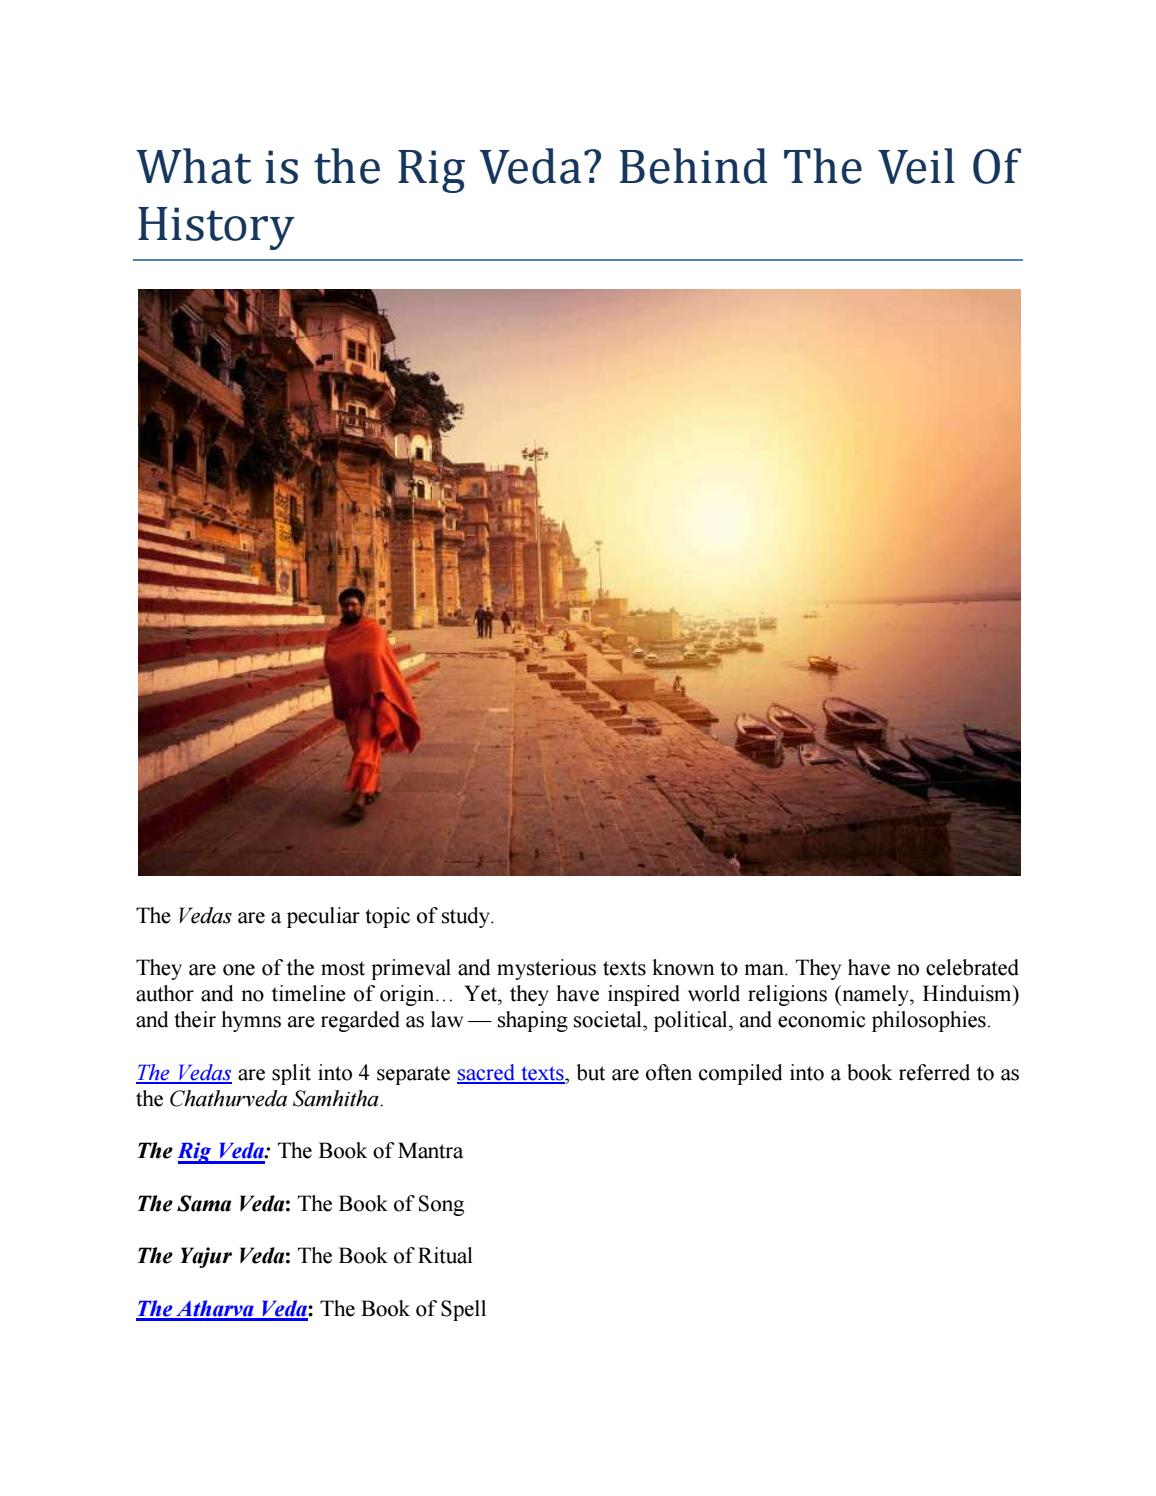 What is the Rig Veda? Behind The Veil Of History